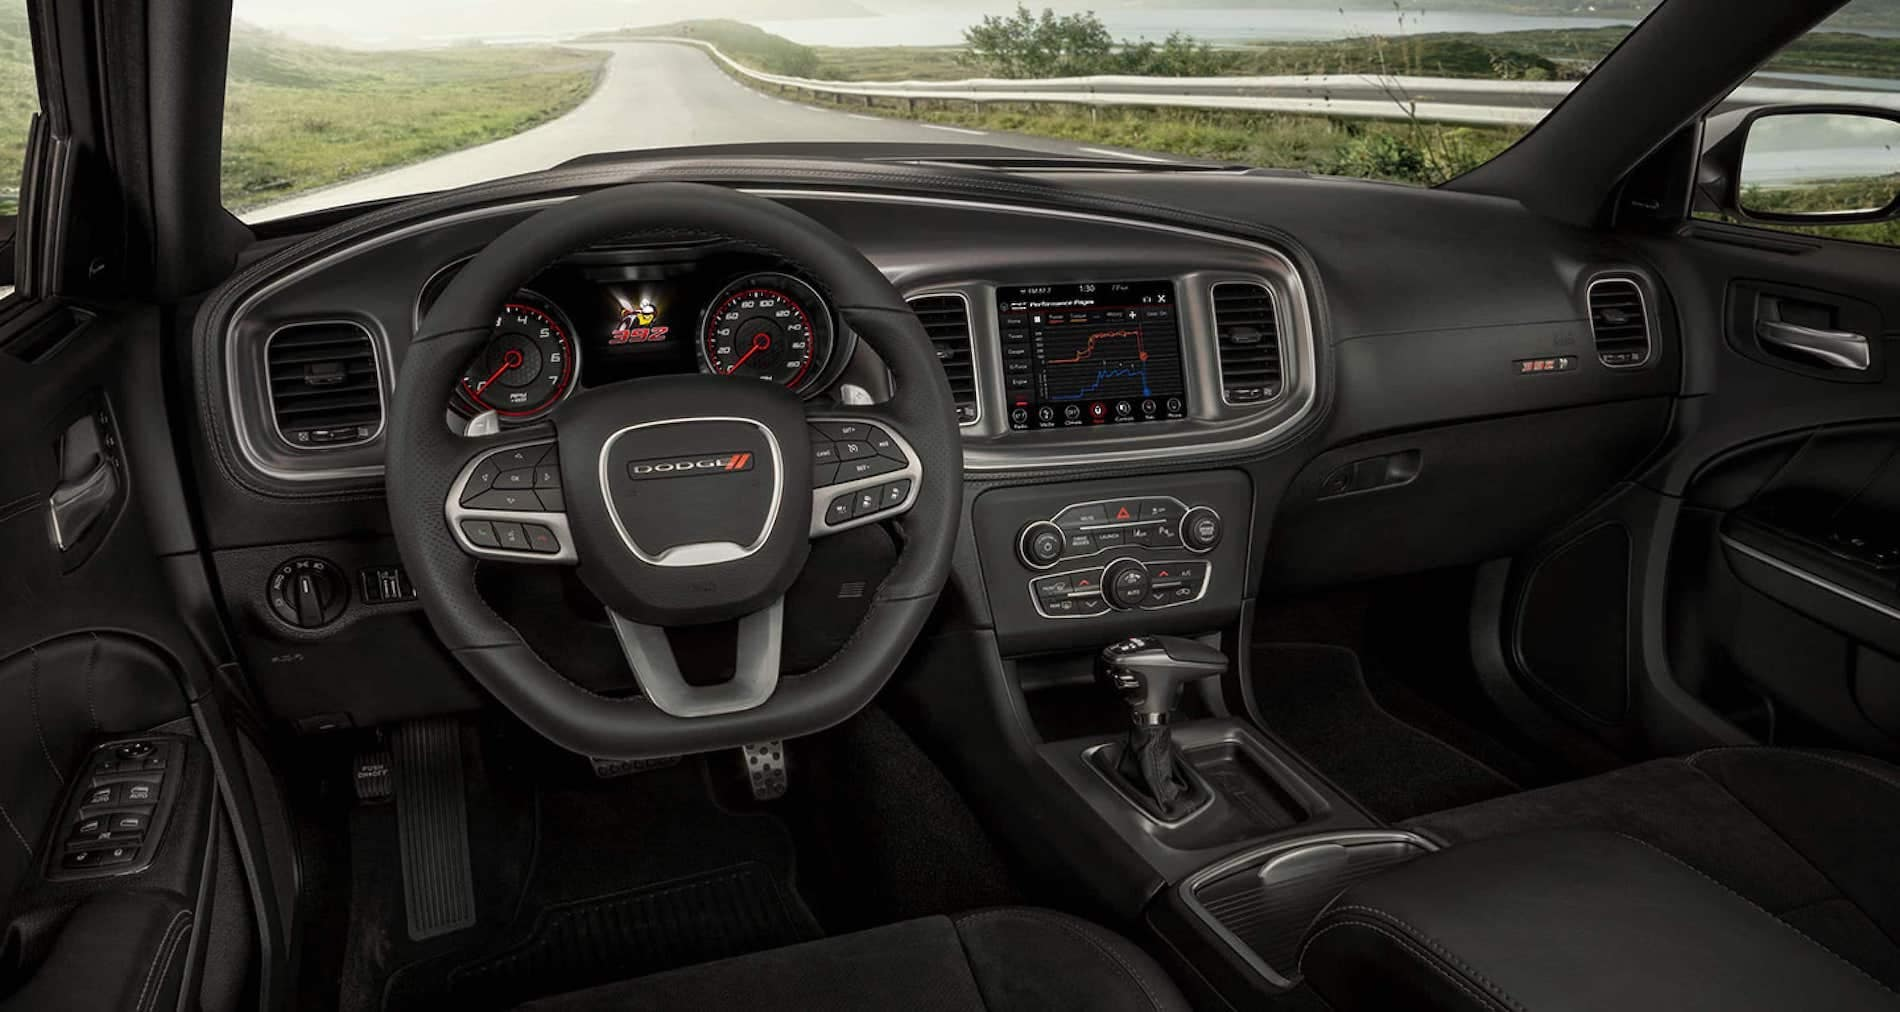 2021 Dodge Charger Technology